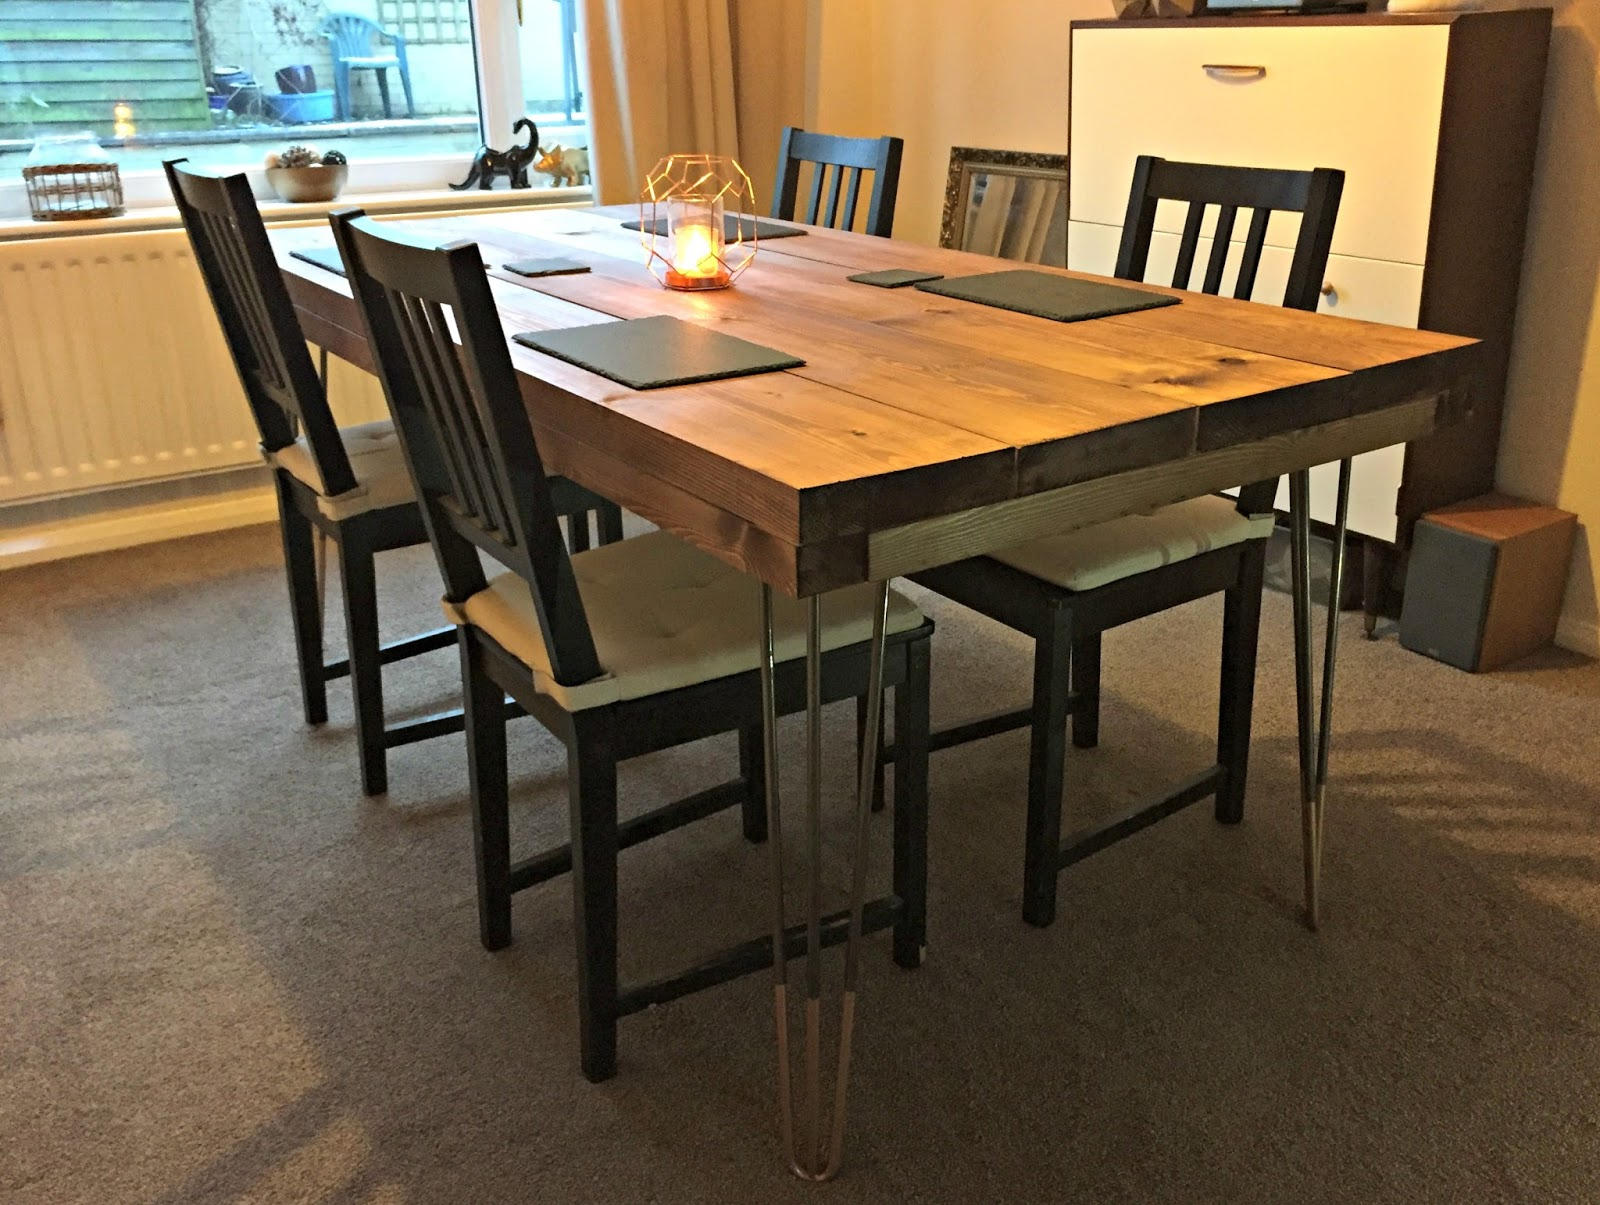 DIY Tutorial - Rustic Dining Table with Hairpin Legs by The Hairpin Leg Company